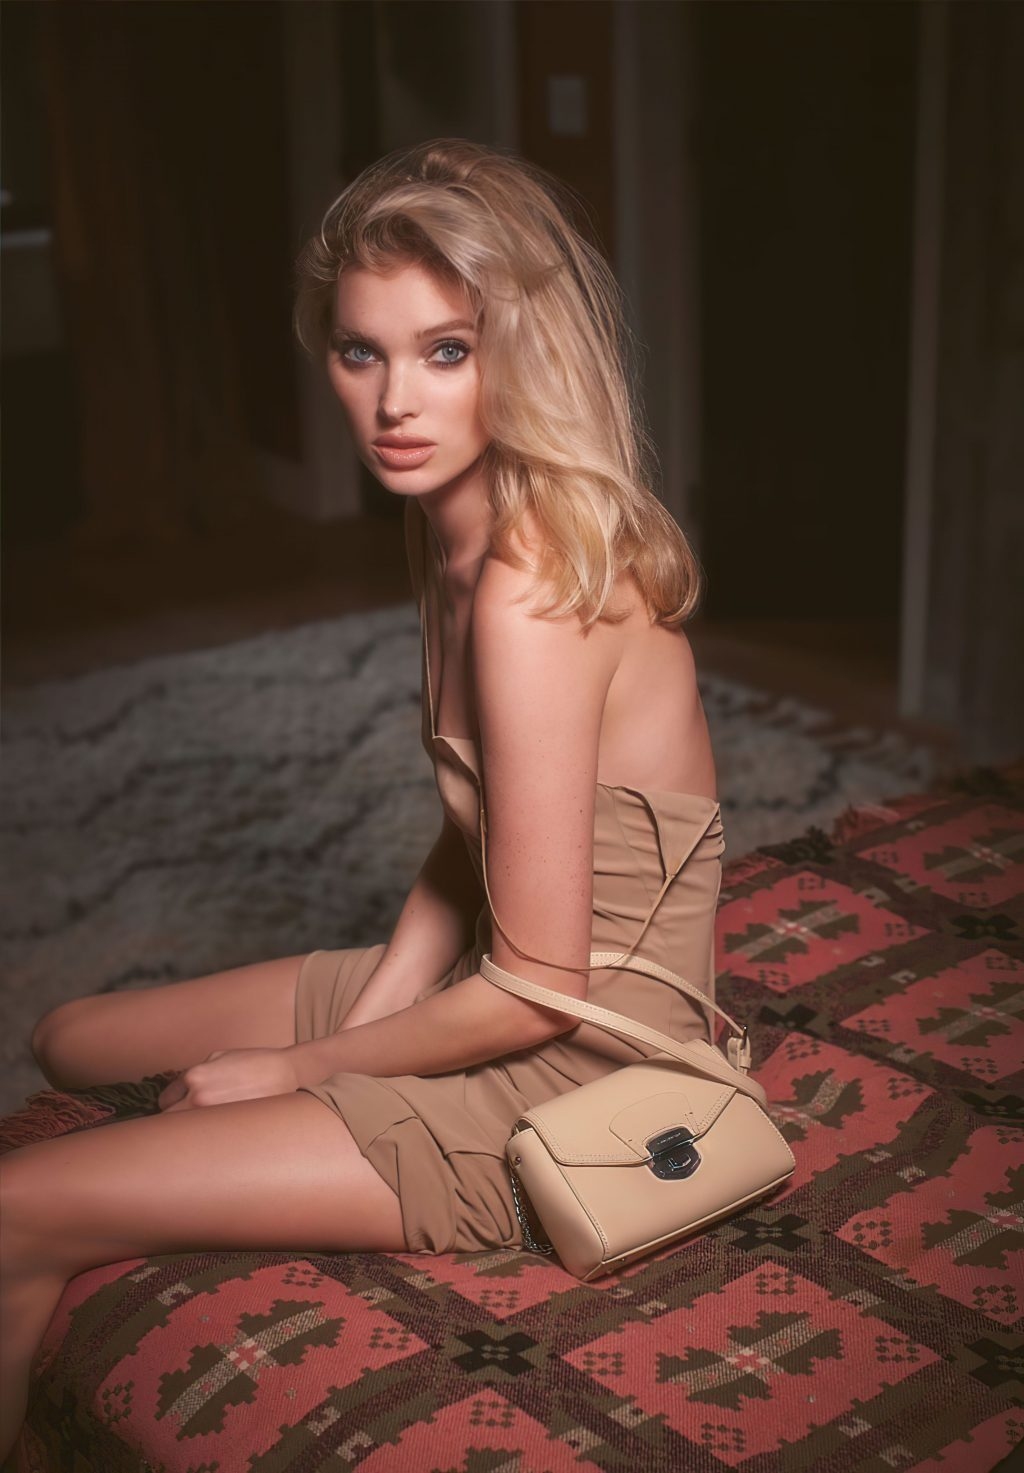 Elsa Hosk Presents Lancaster Spring/Summer 2020 Campaign (12 Photos)